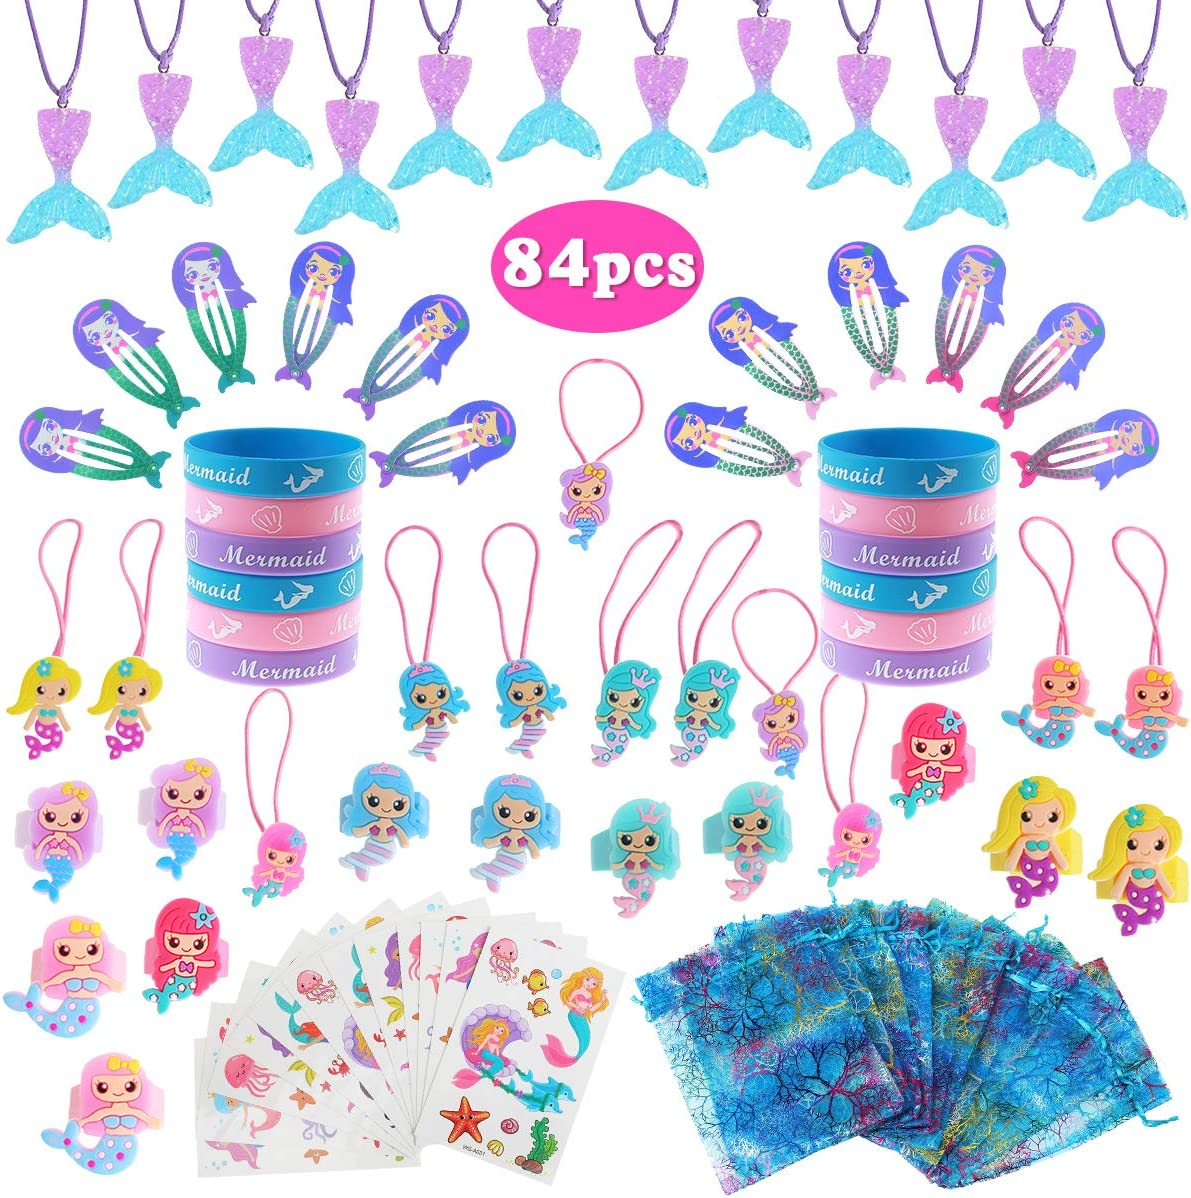 10 Mermaid Star Necklaces Party Favors.